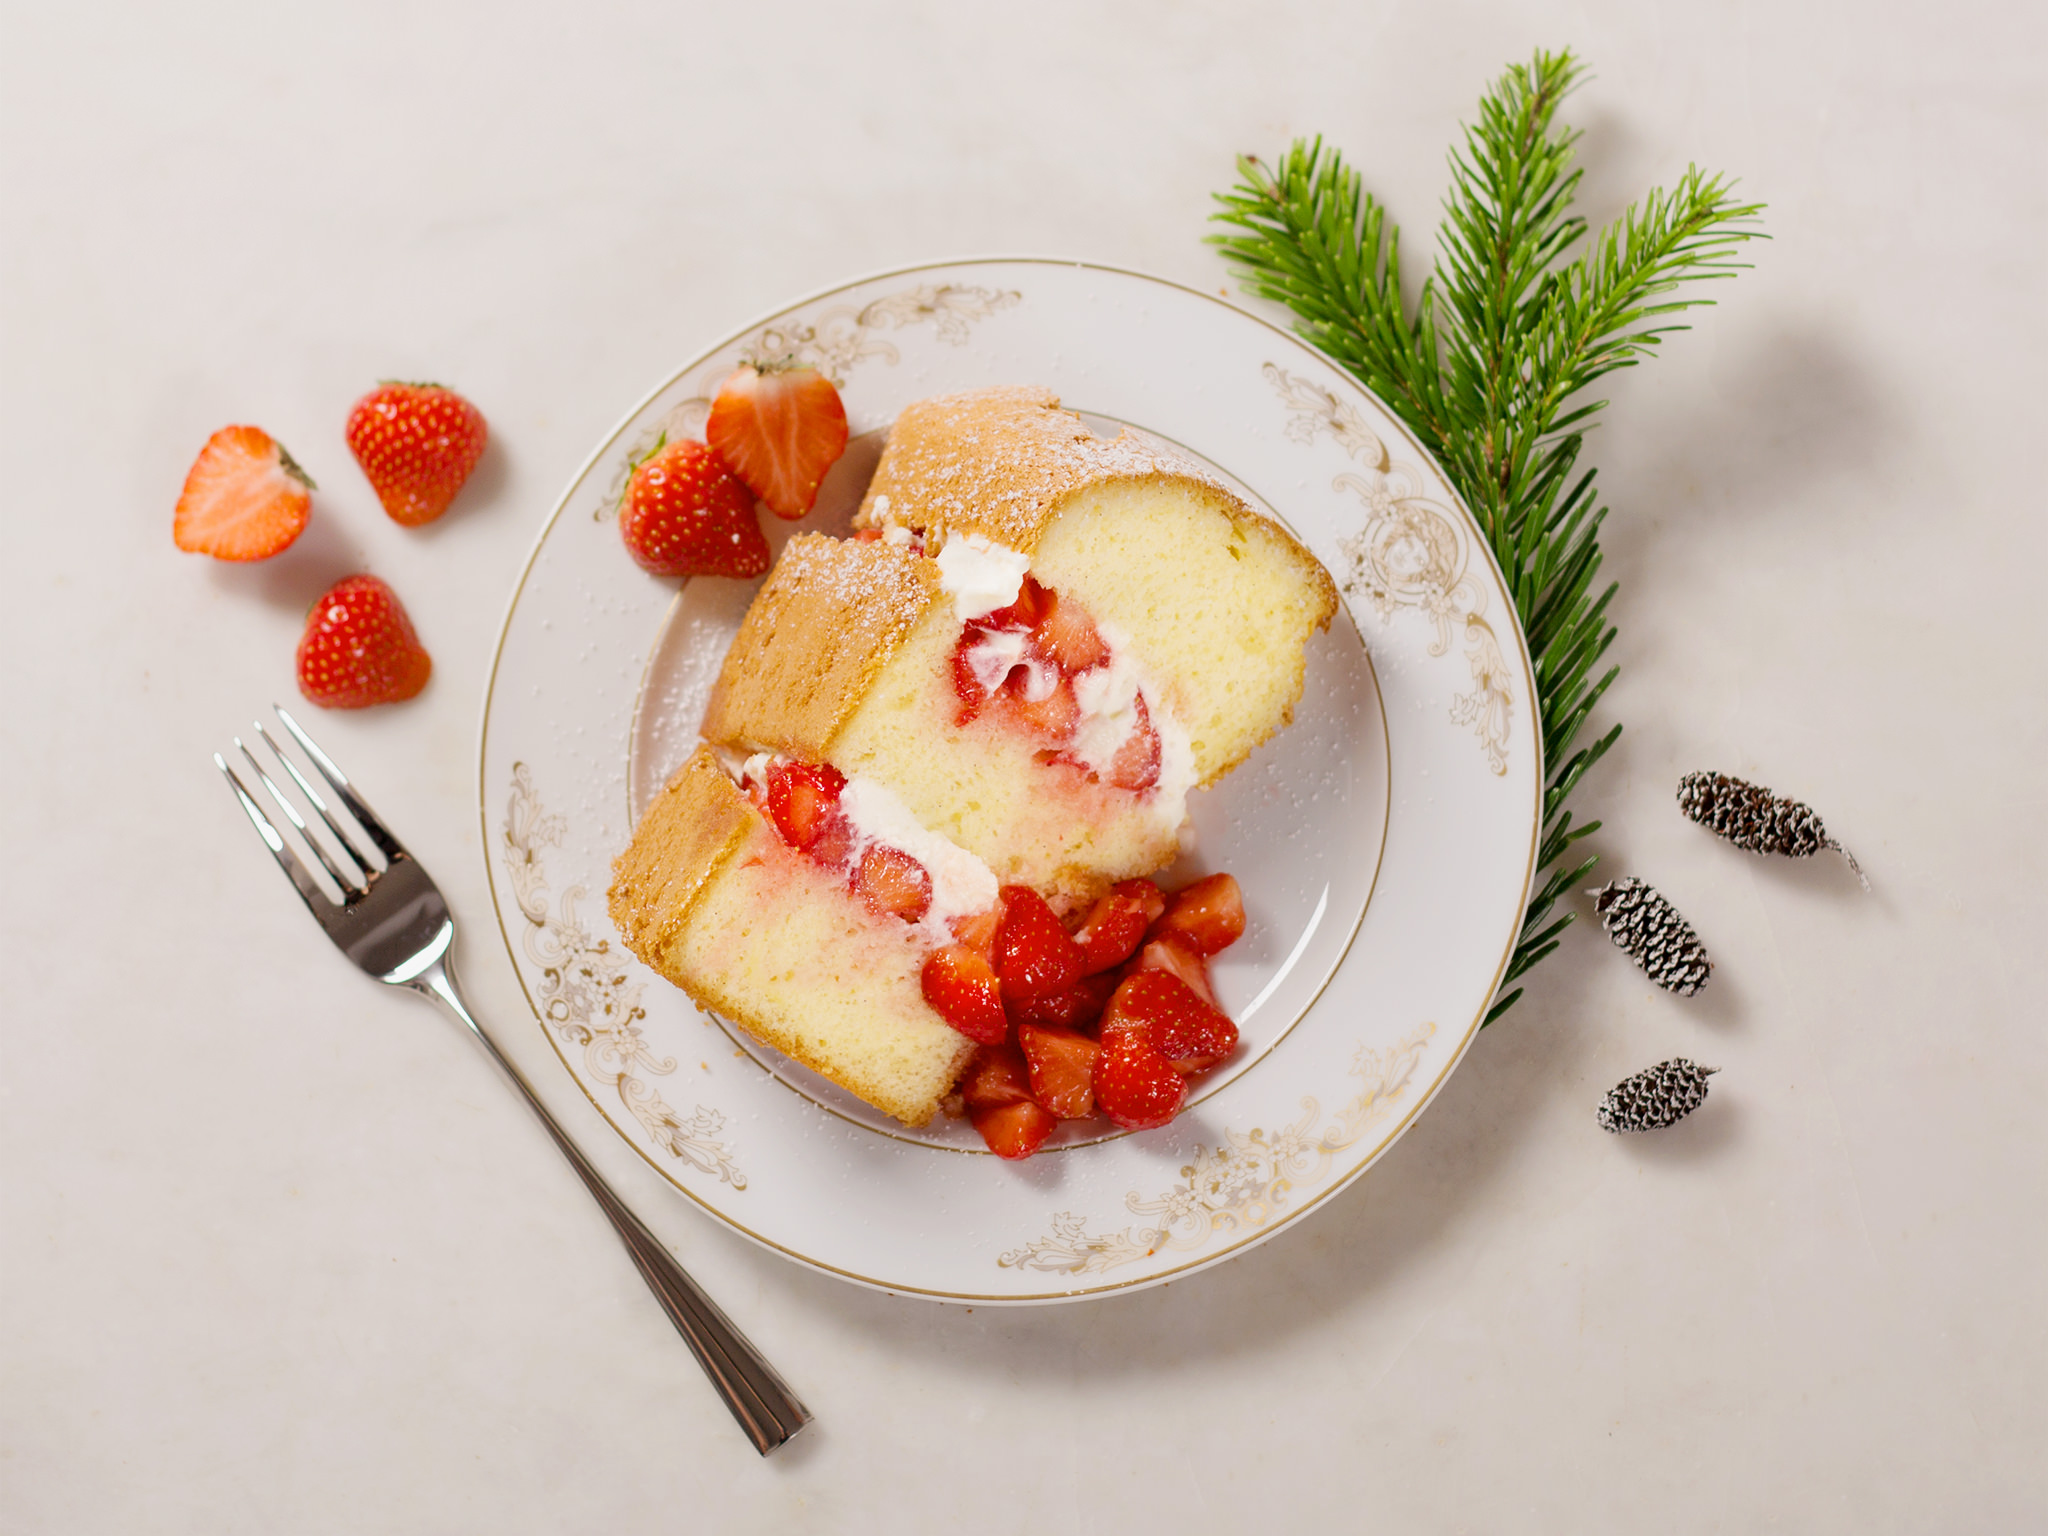 Chiffon cake with strawberries and cream - Recipes ...